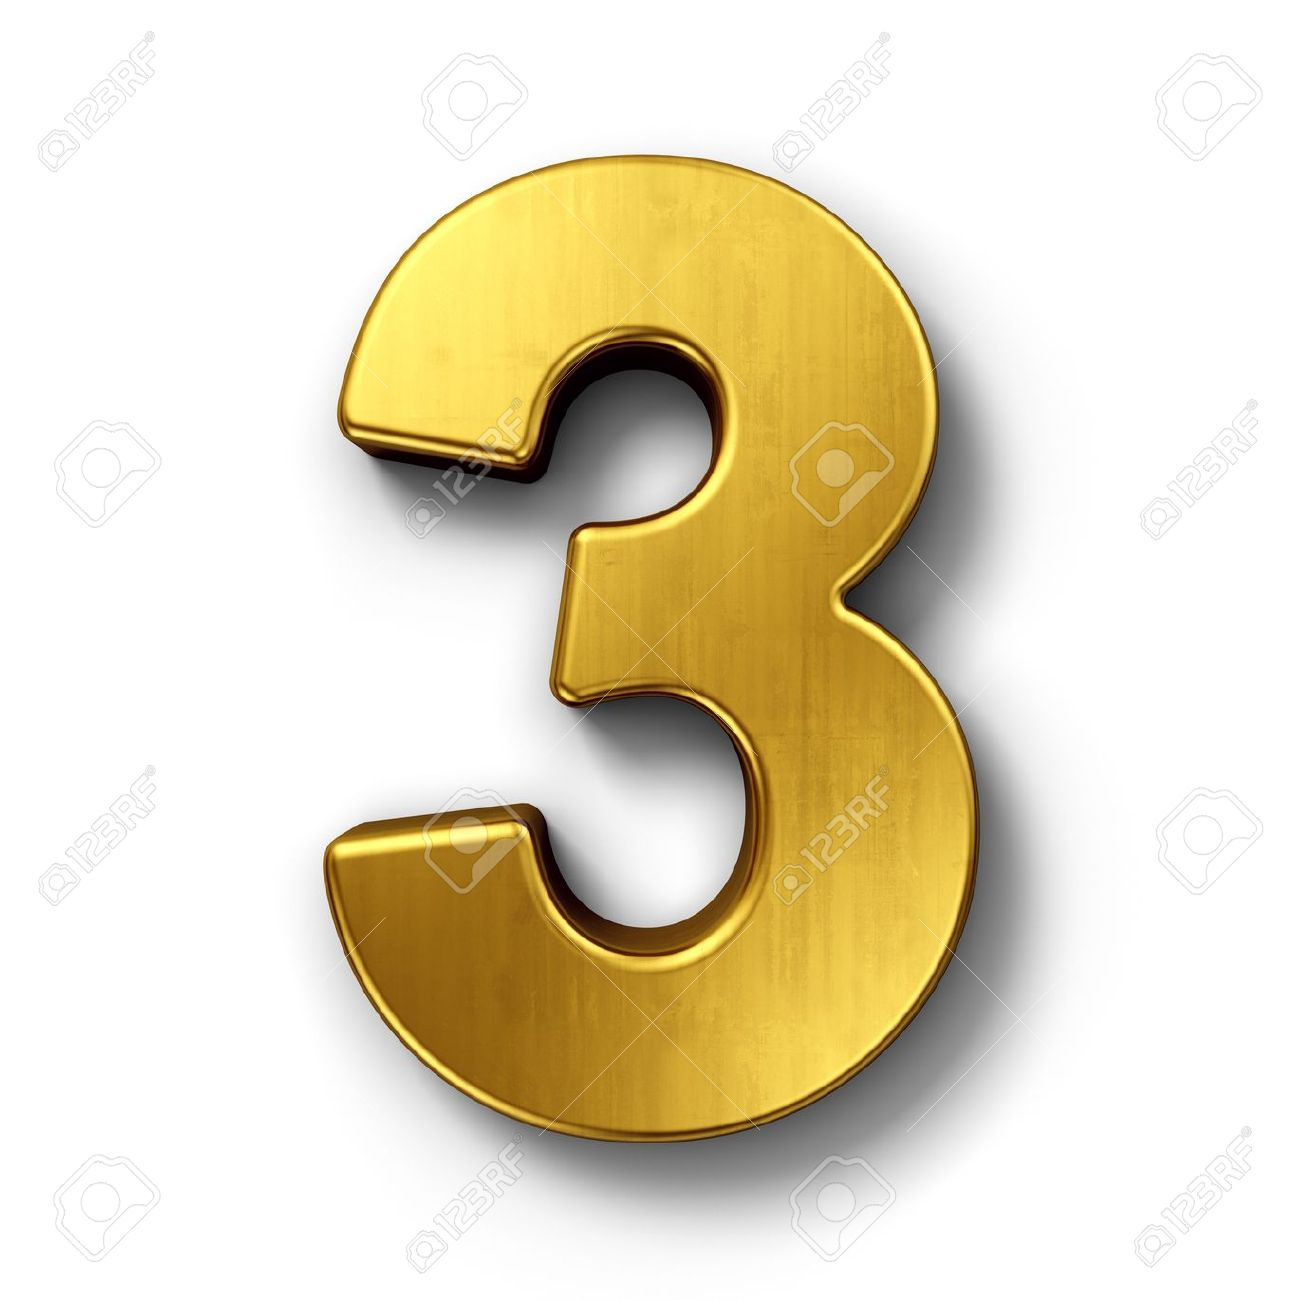 3d rendering of the number 3 in gold metal on a white isolated background. - 7826996